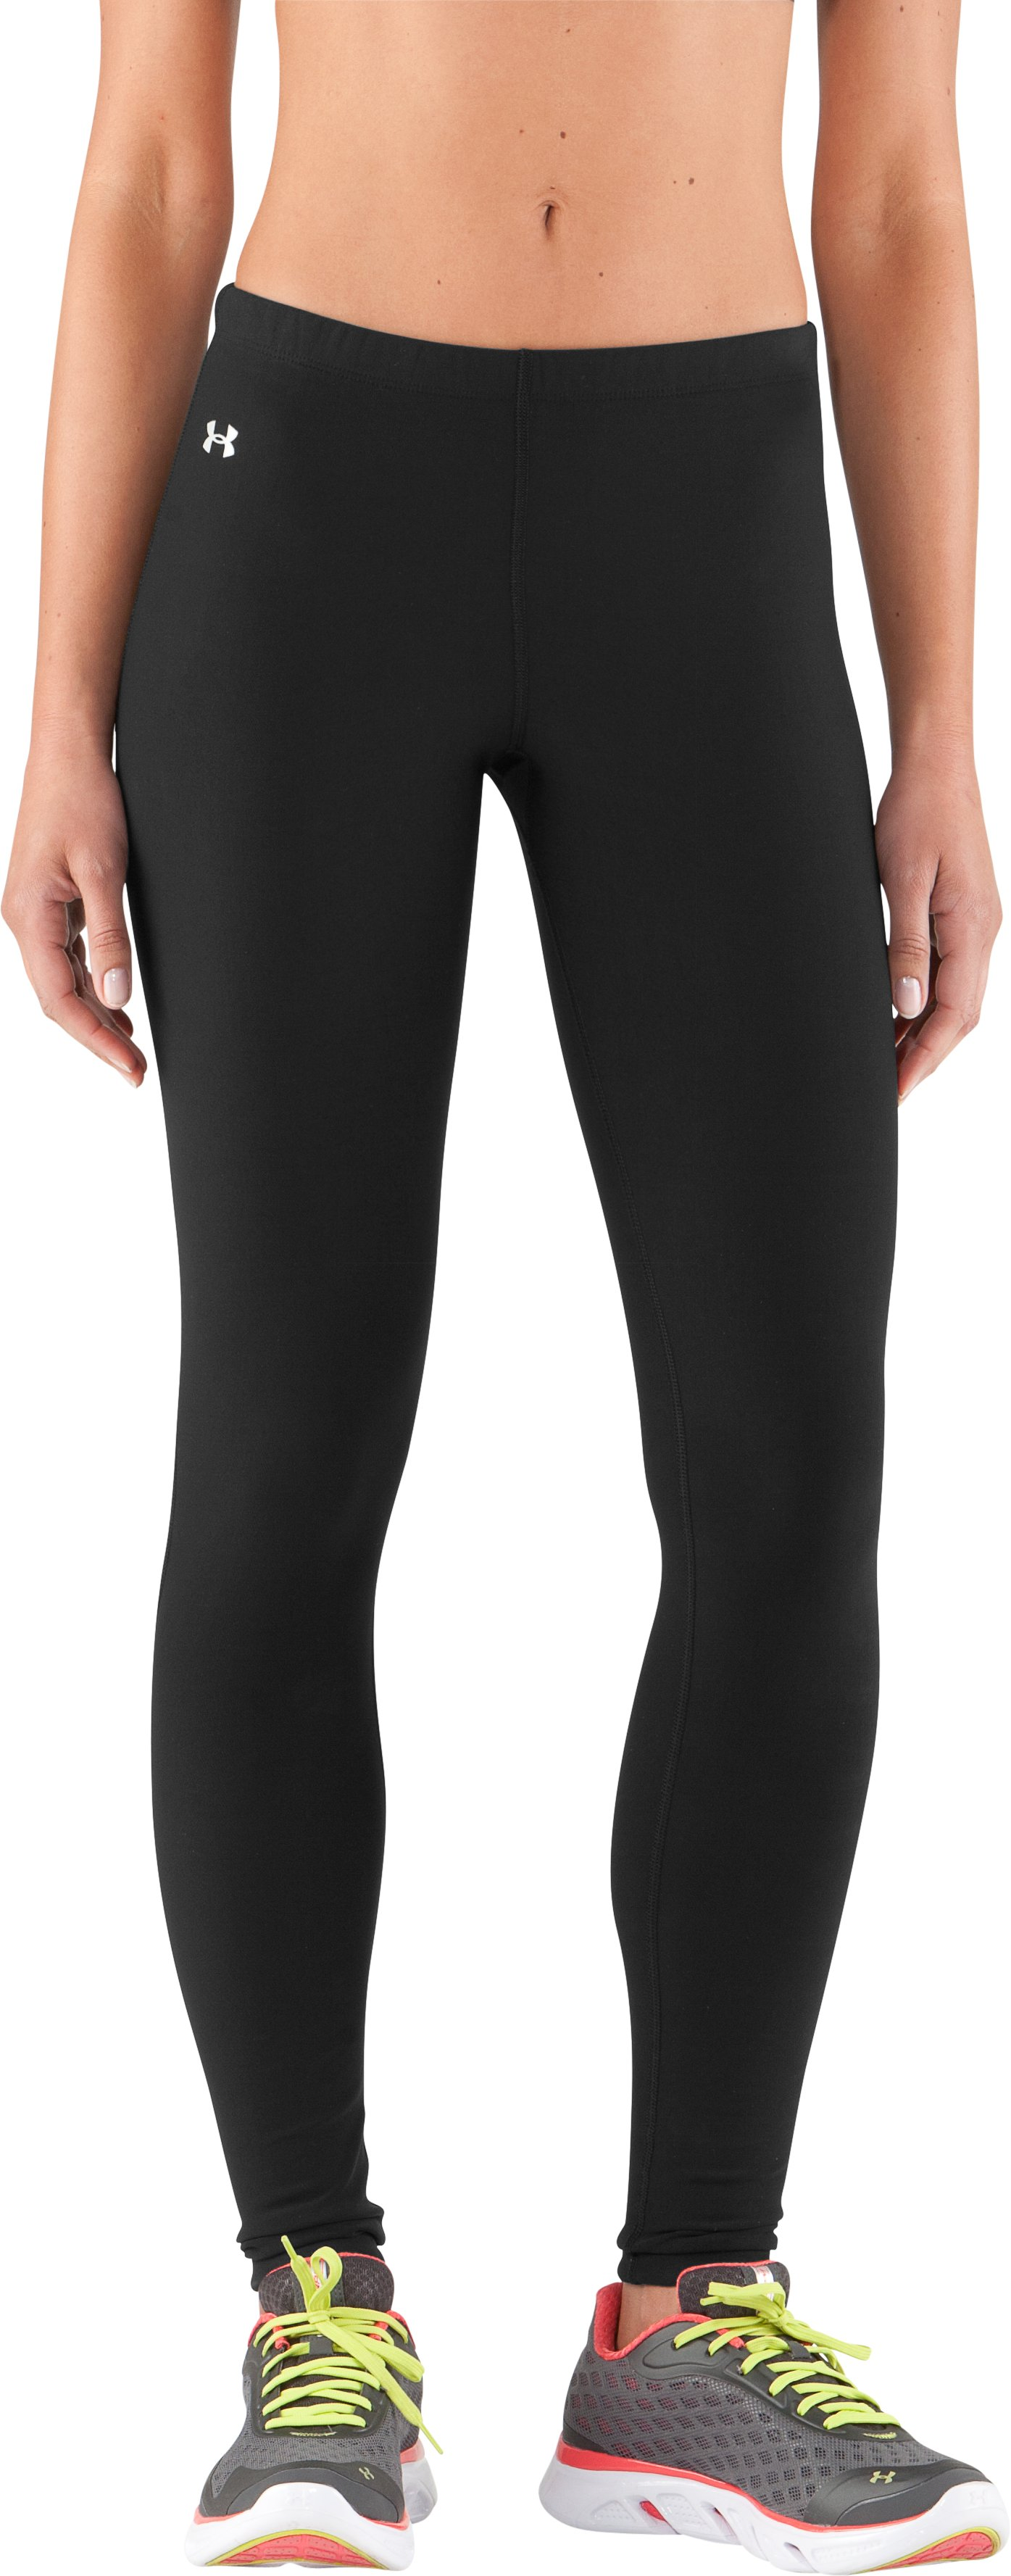 Women's ColdGear® Frosty Compression Tights, Black , zoomed image